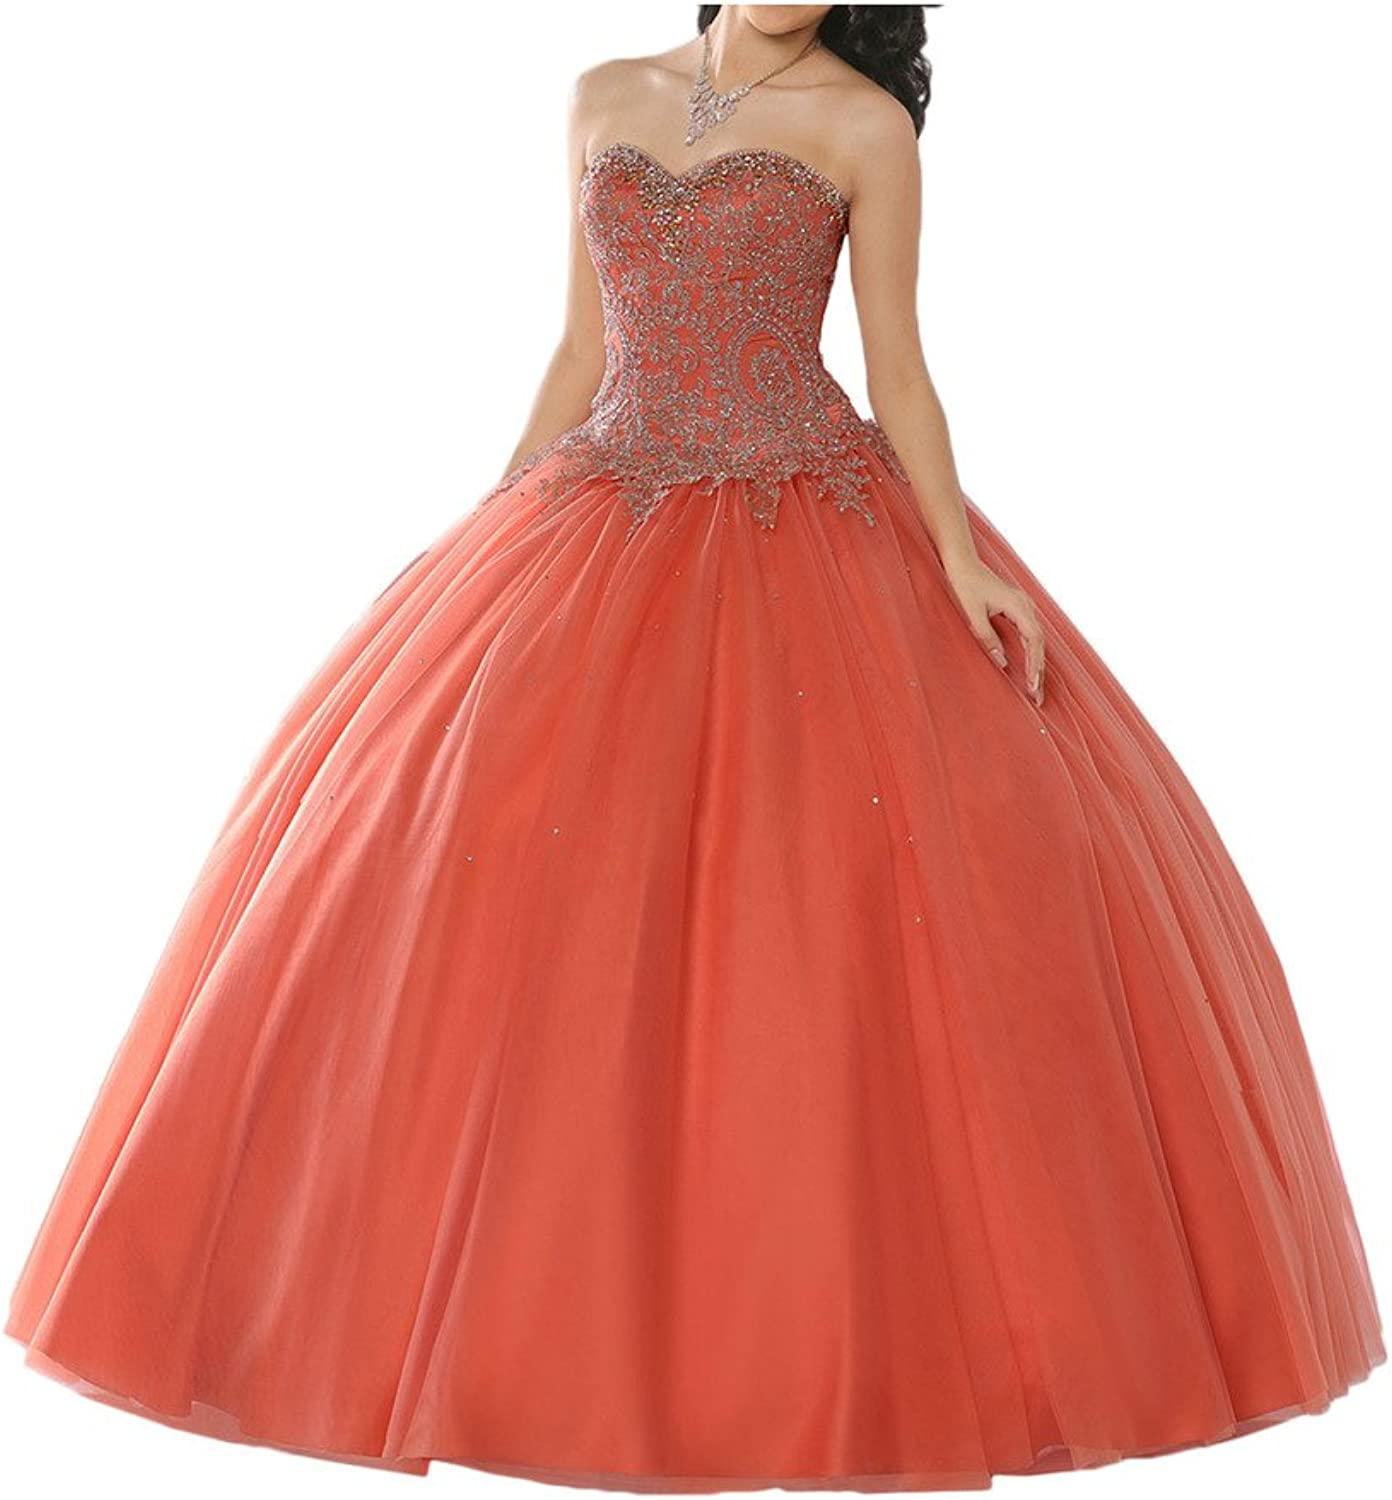 MILANO BRIDE 2017 Ball Gown Strapless Beadings FloorLength Quinceanera Dress